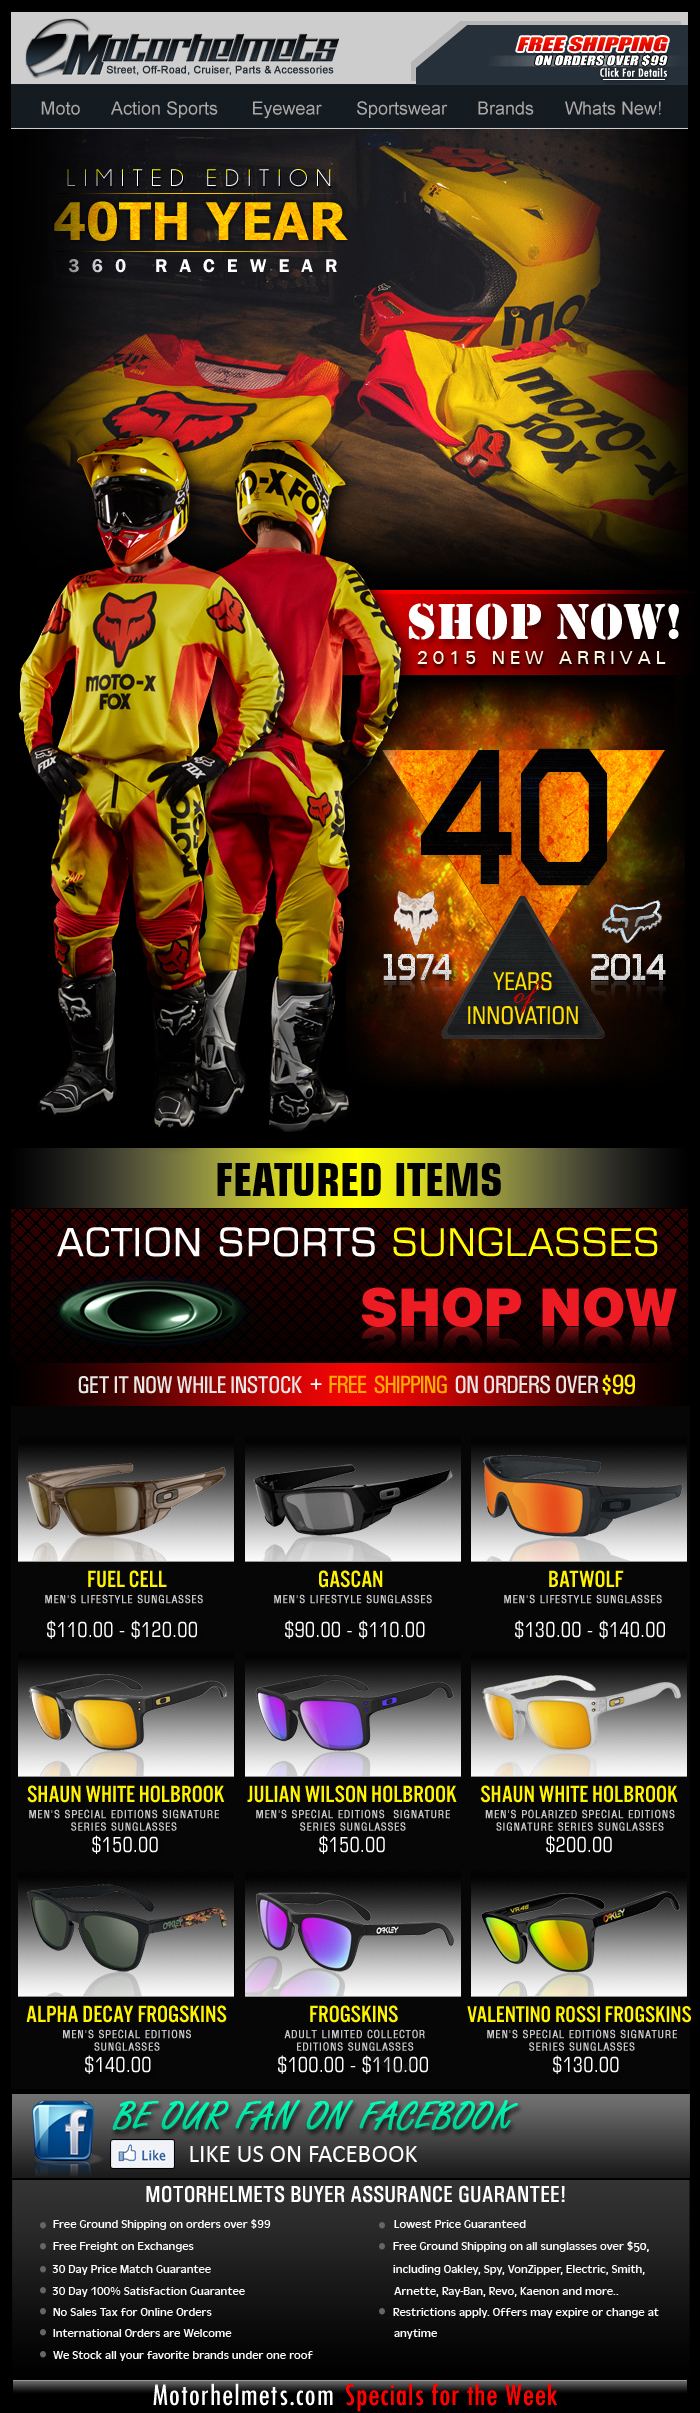 FOX 40th Anniversary LE Release Racewear...Available NOW!